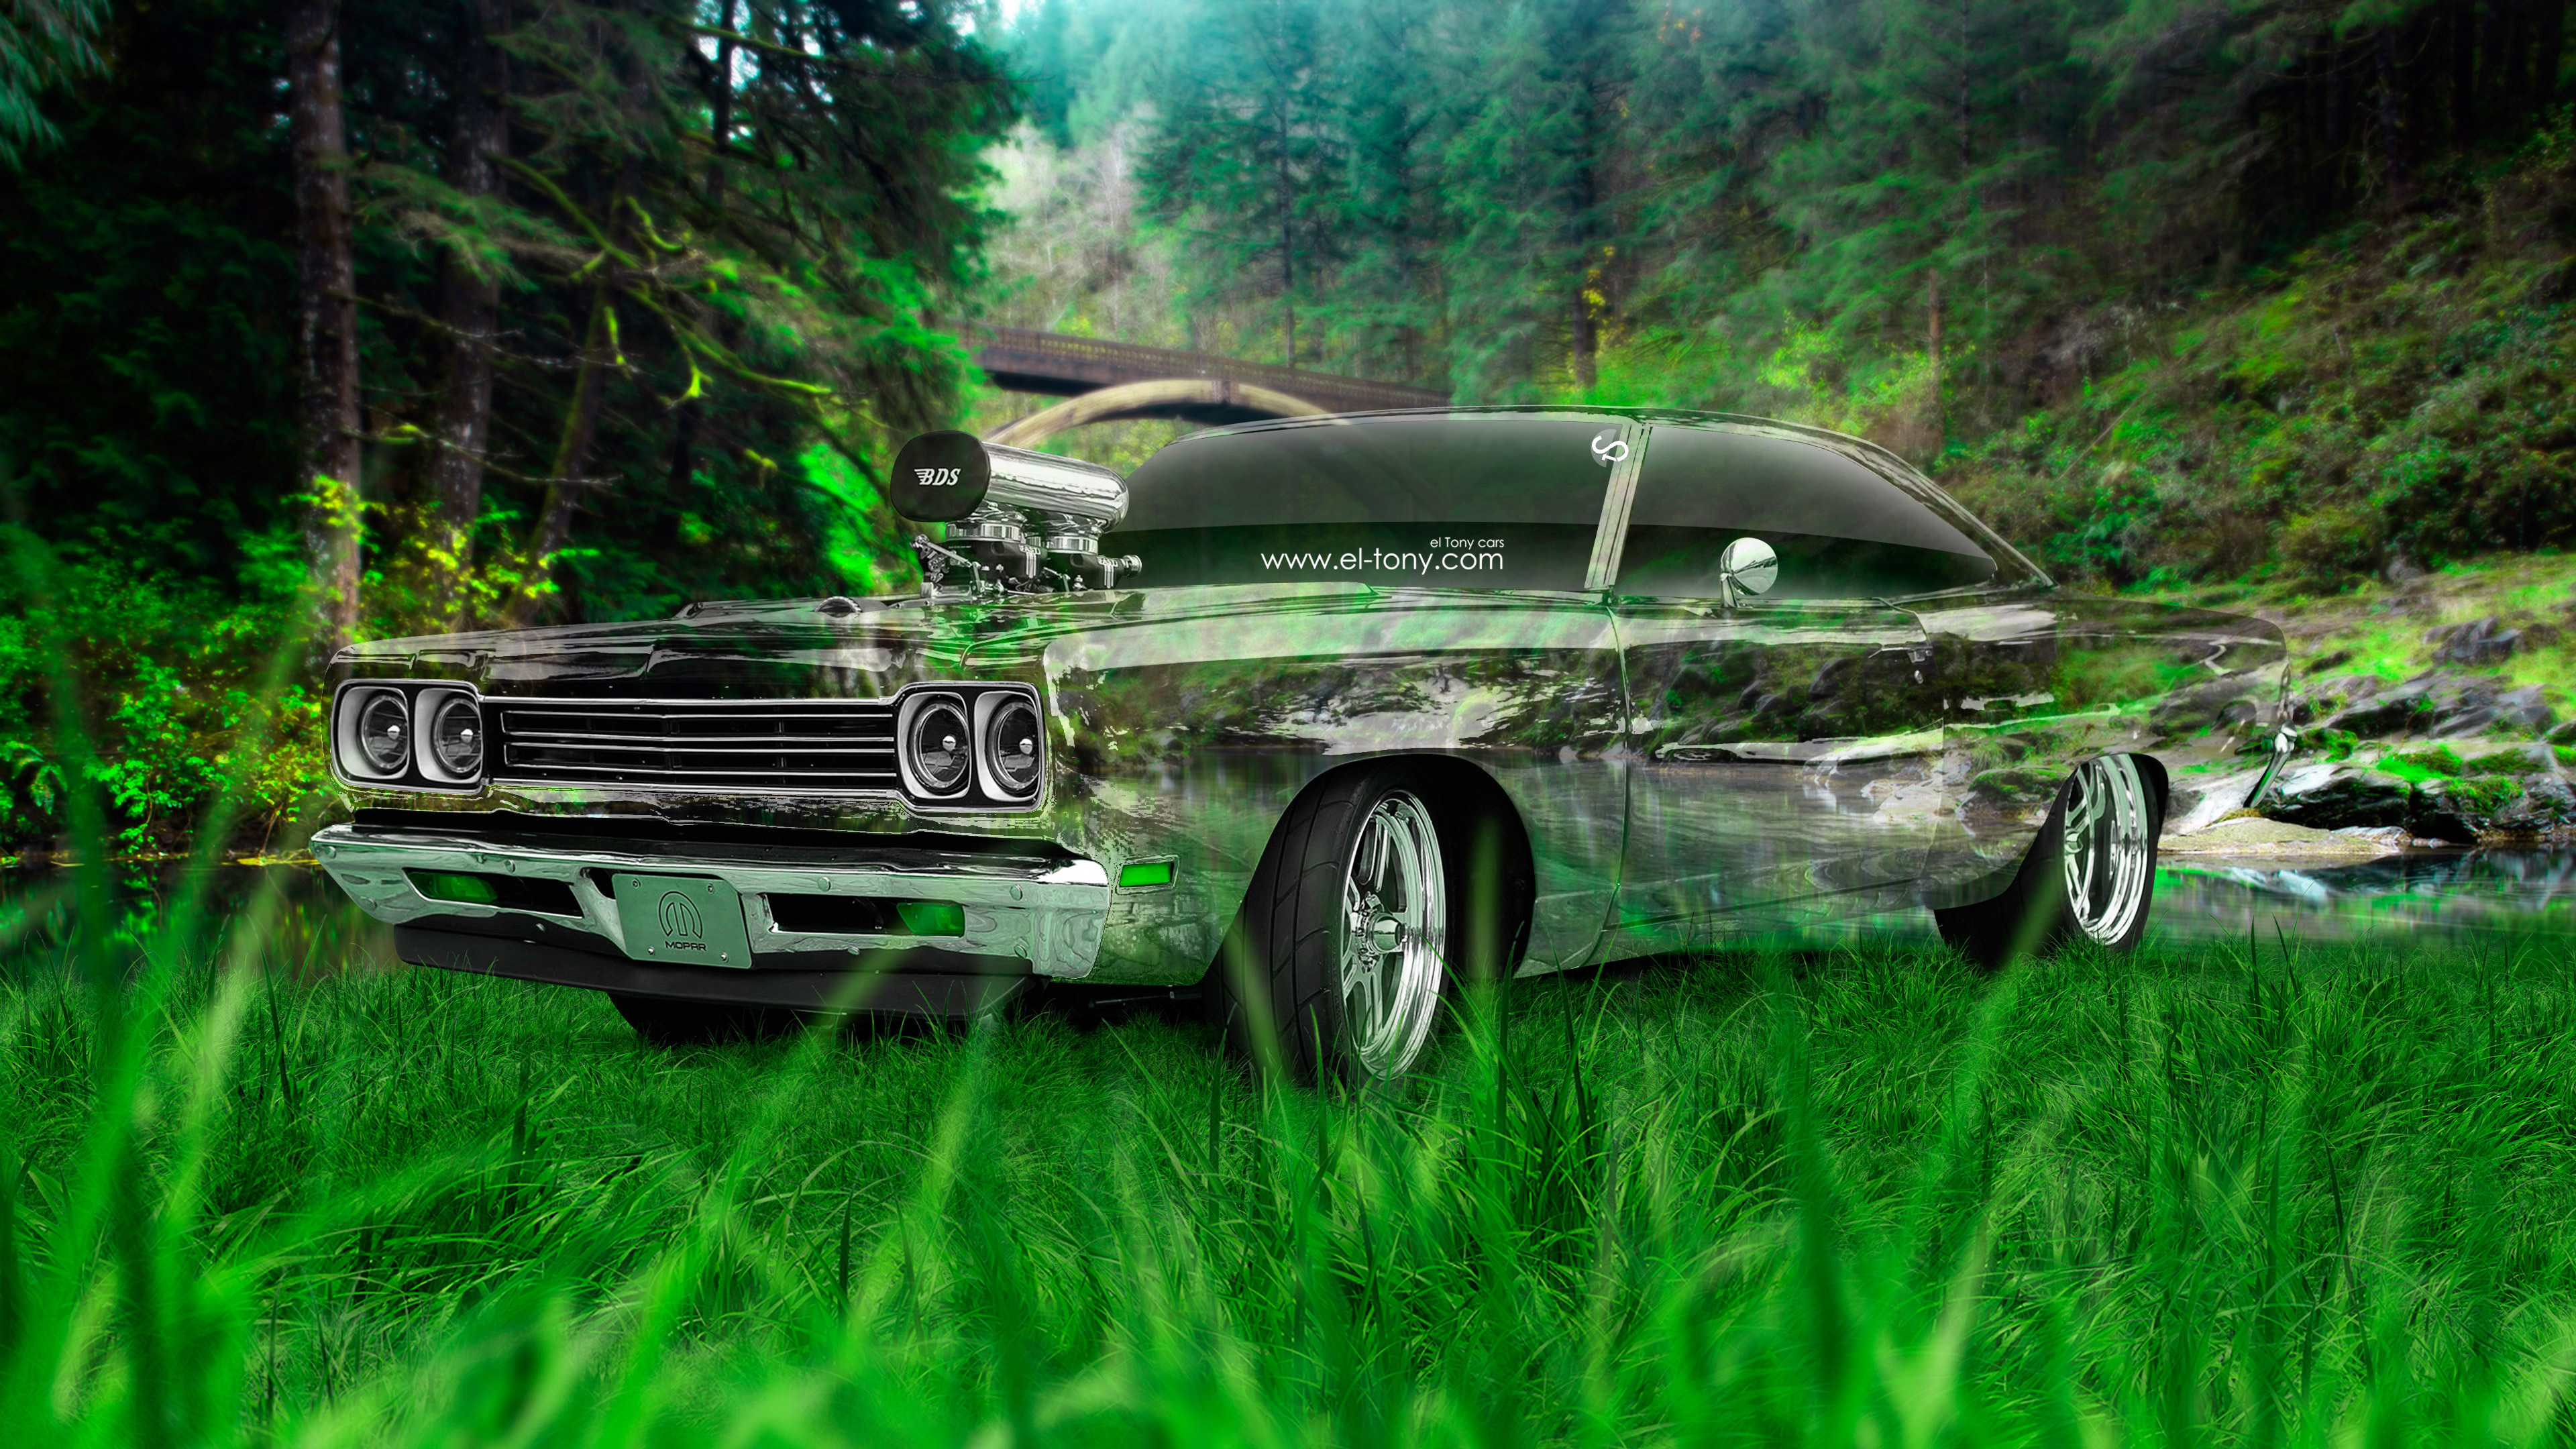 Plymouth-Road-Runner-1969-Tuning-Muscle-3D-Crystal-Nature-Car-2015-Green-Grass-Style-4K-Wallpapers-design-by-Tony-Kokhan-www.el-tony.com-image